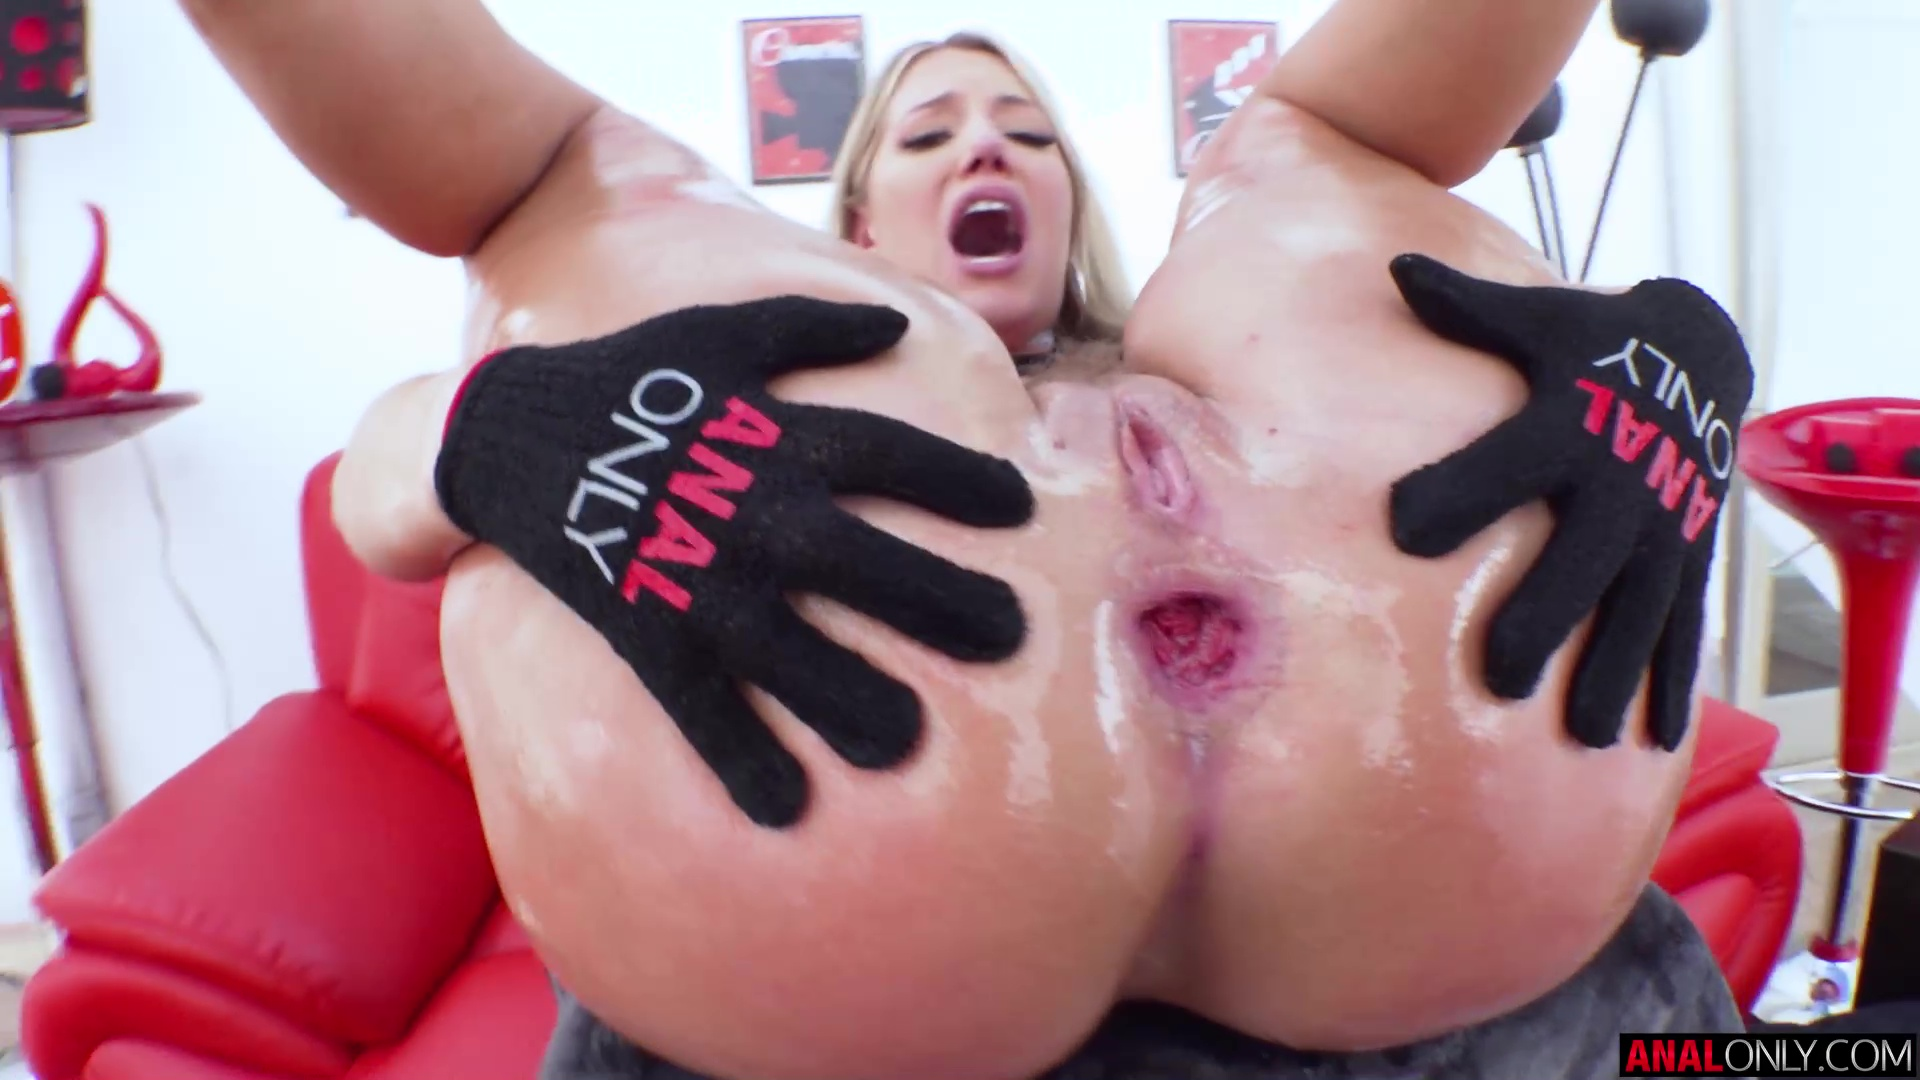 AnalOnly.com - Drilling Candice's Juicy Ass